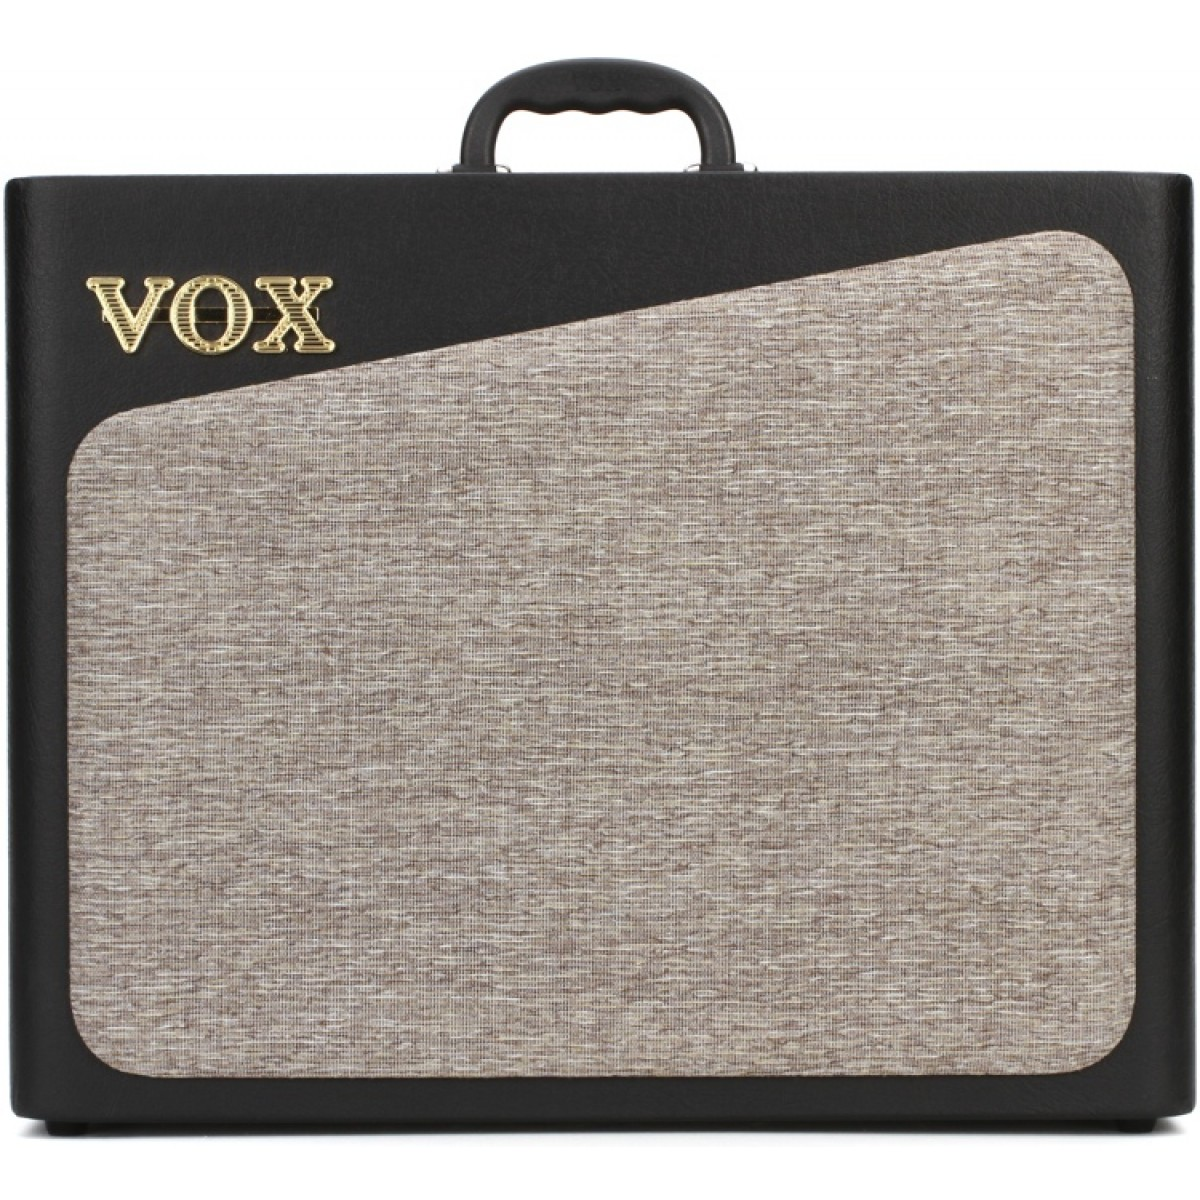 Vox Av30 30w 1x10 Buy Analog Valve Modeling Amp Best Price Ampcircuits With 10 Speaker 12ax7 Tubes 8 Circuits And Bright Fat Switches